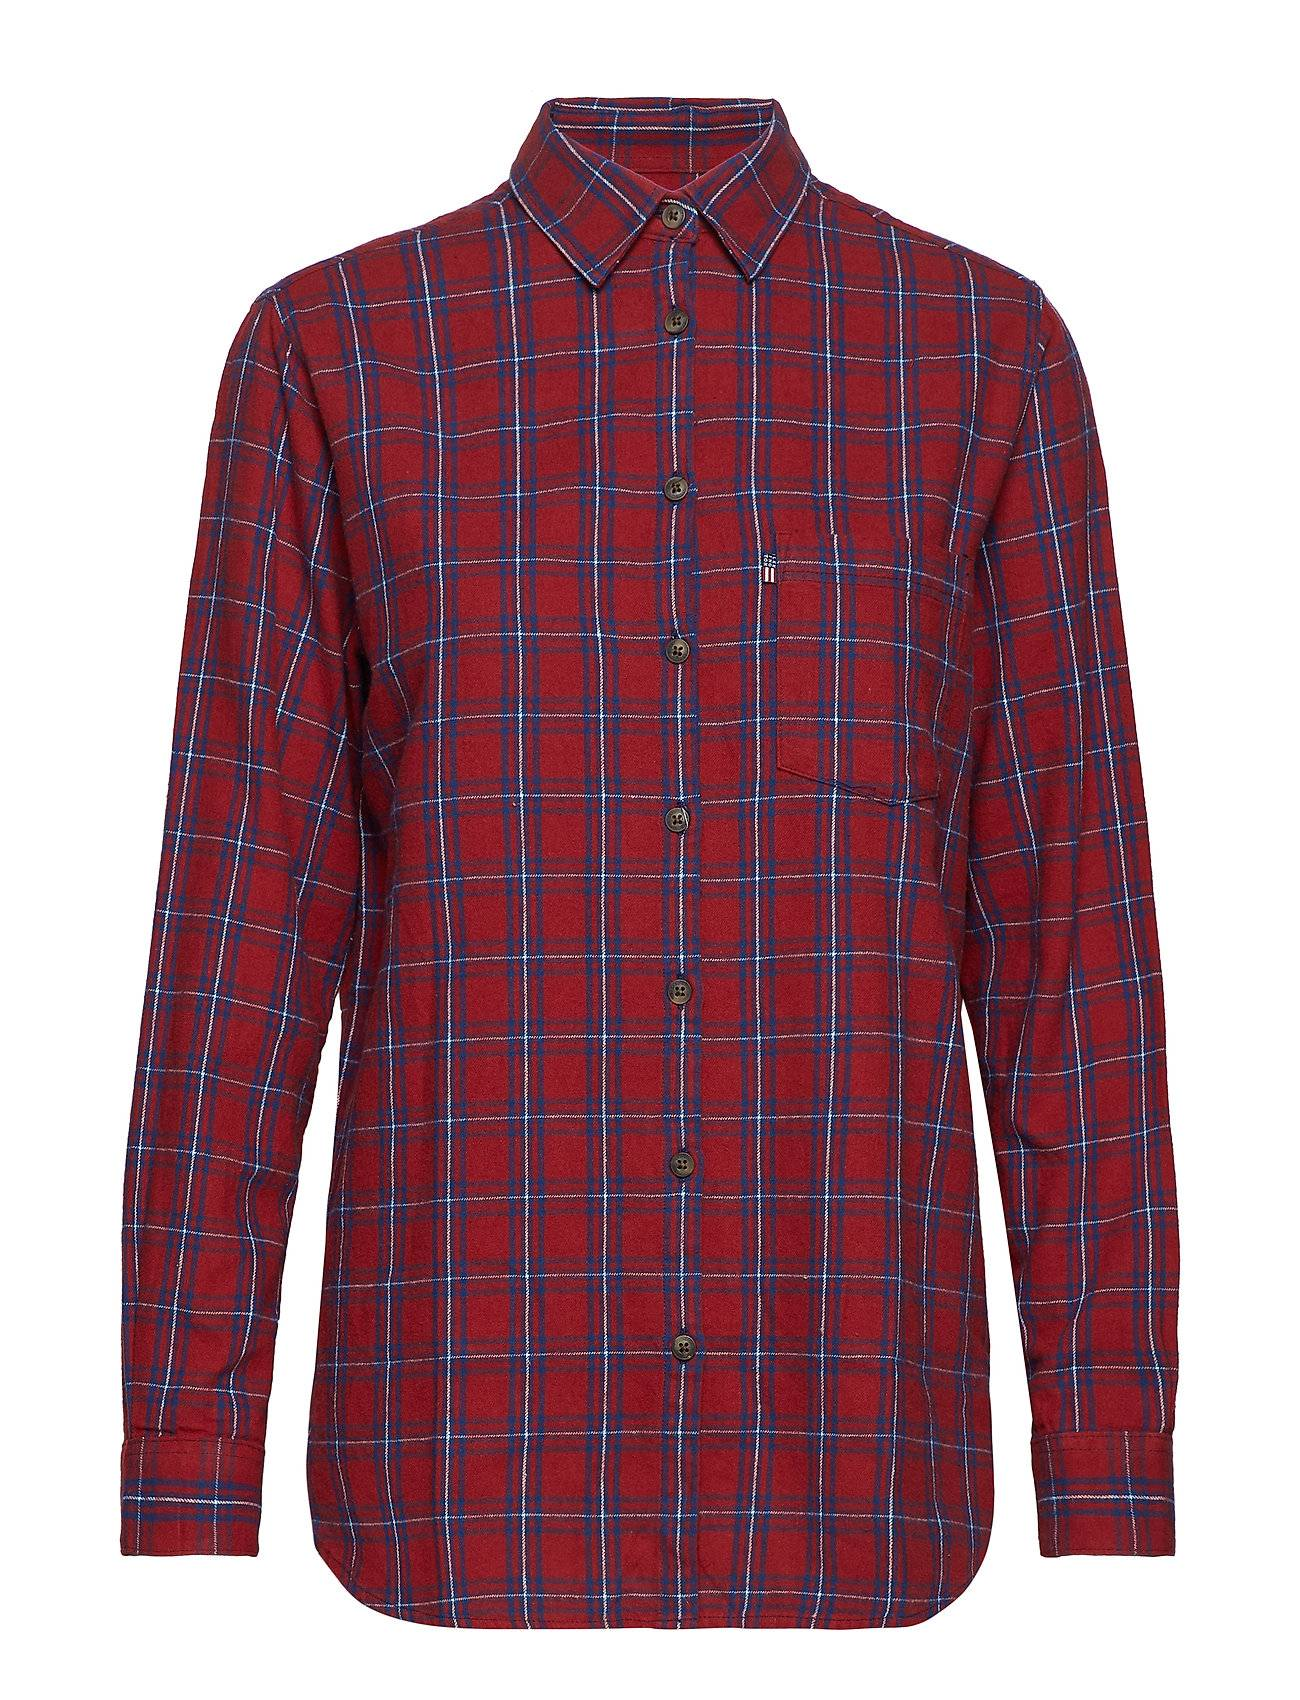 Lexington Clothing Isa Flannel Shirt